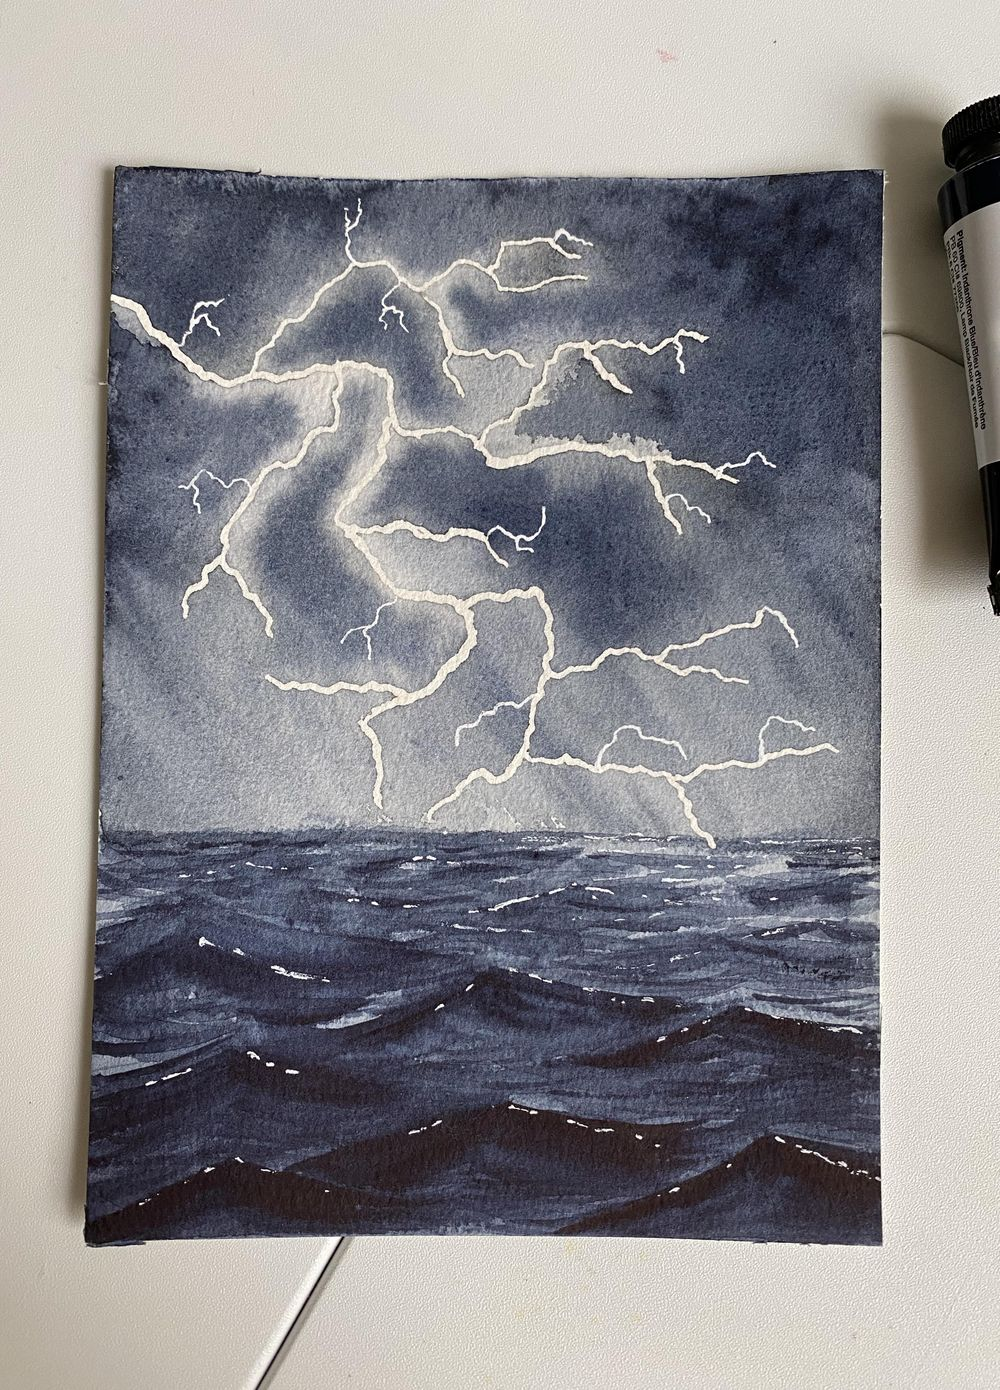 Stormy seas - image 1 - student project